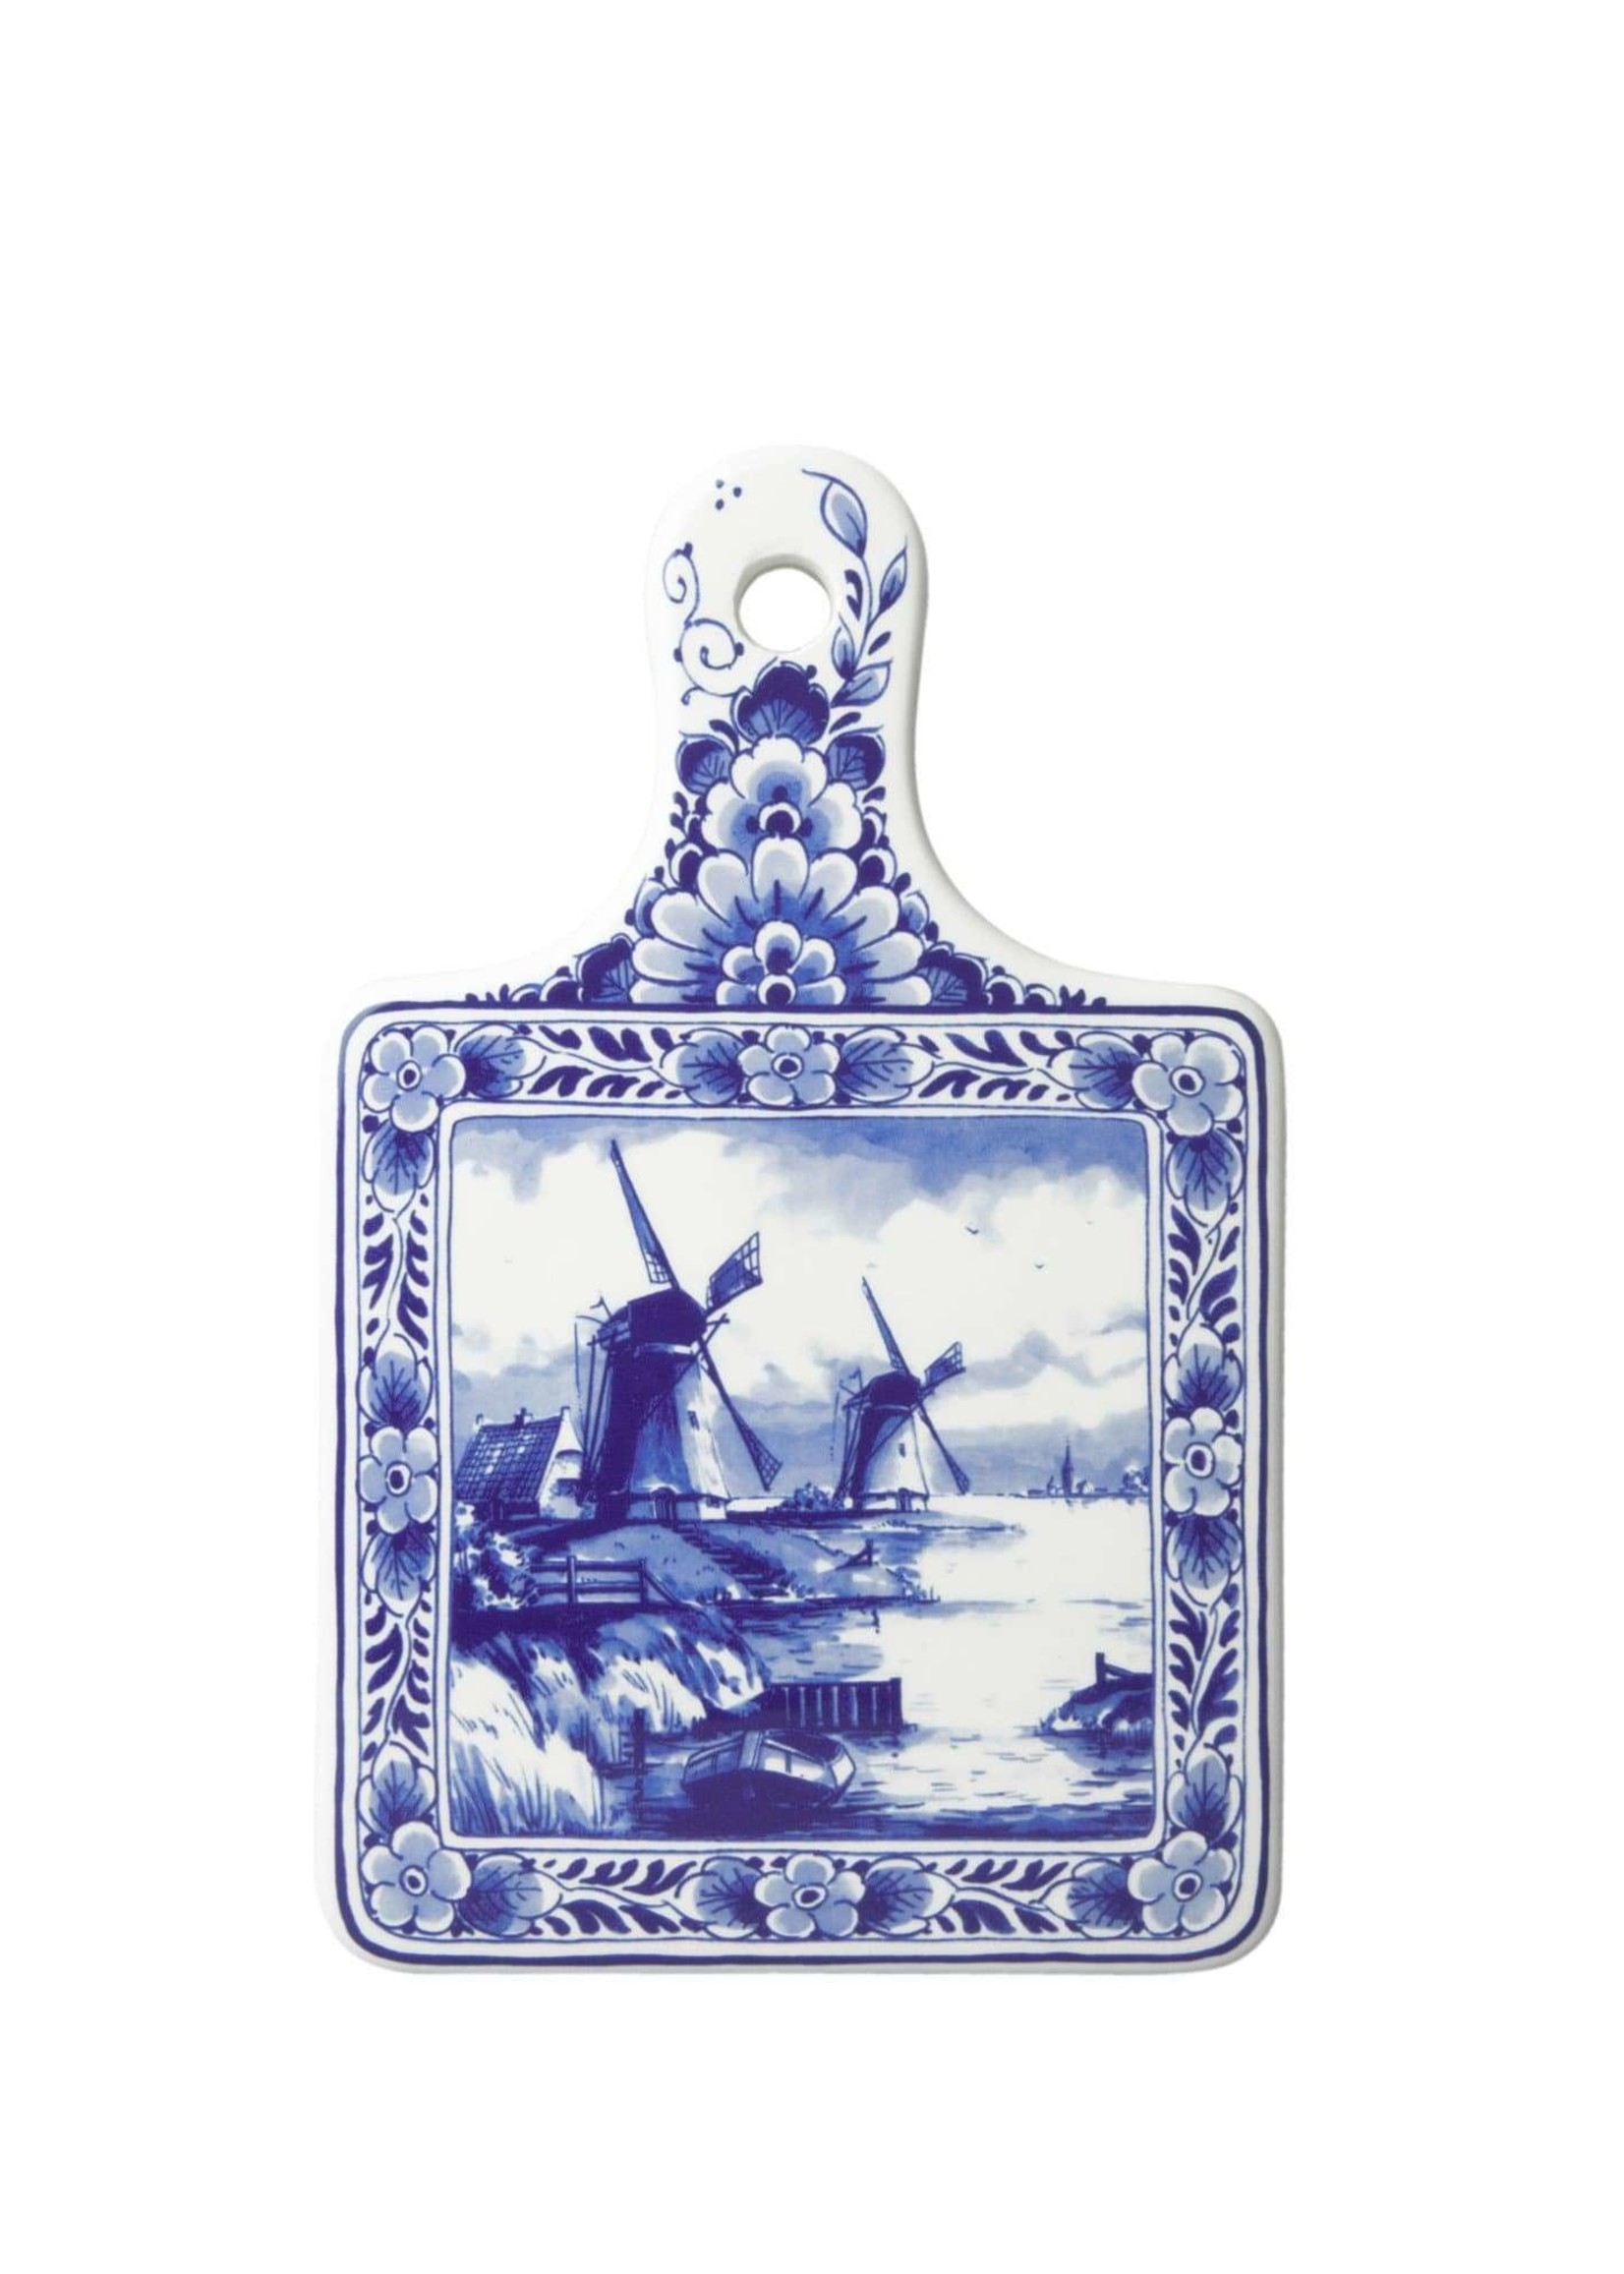 Delft Blue Cheese Board with Windmills, Small